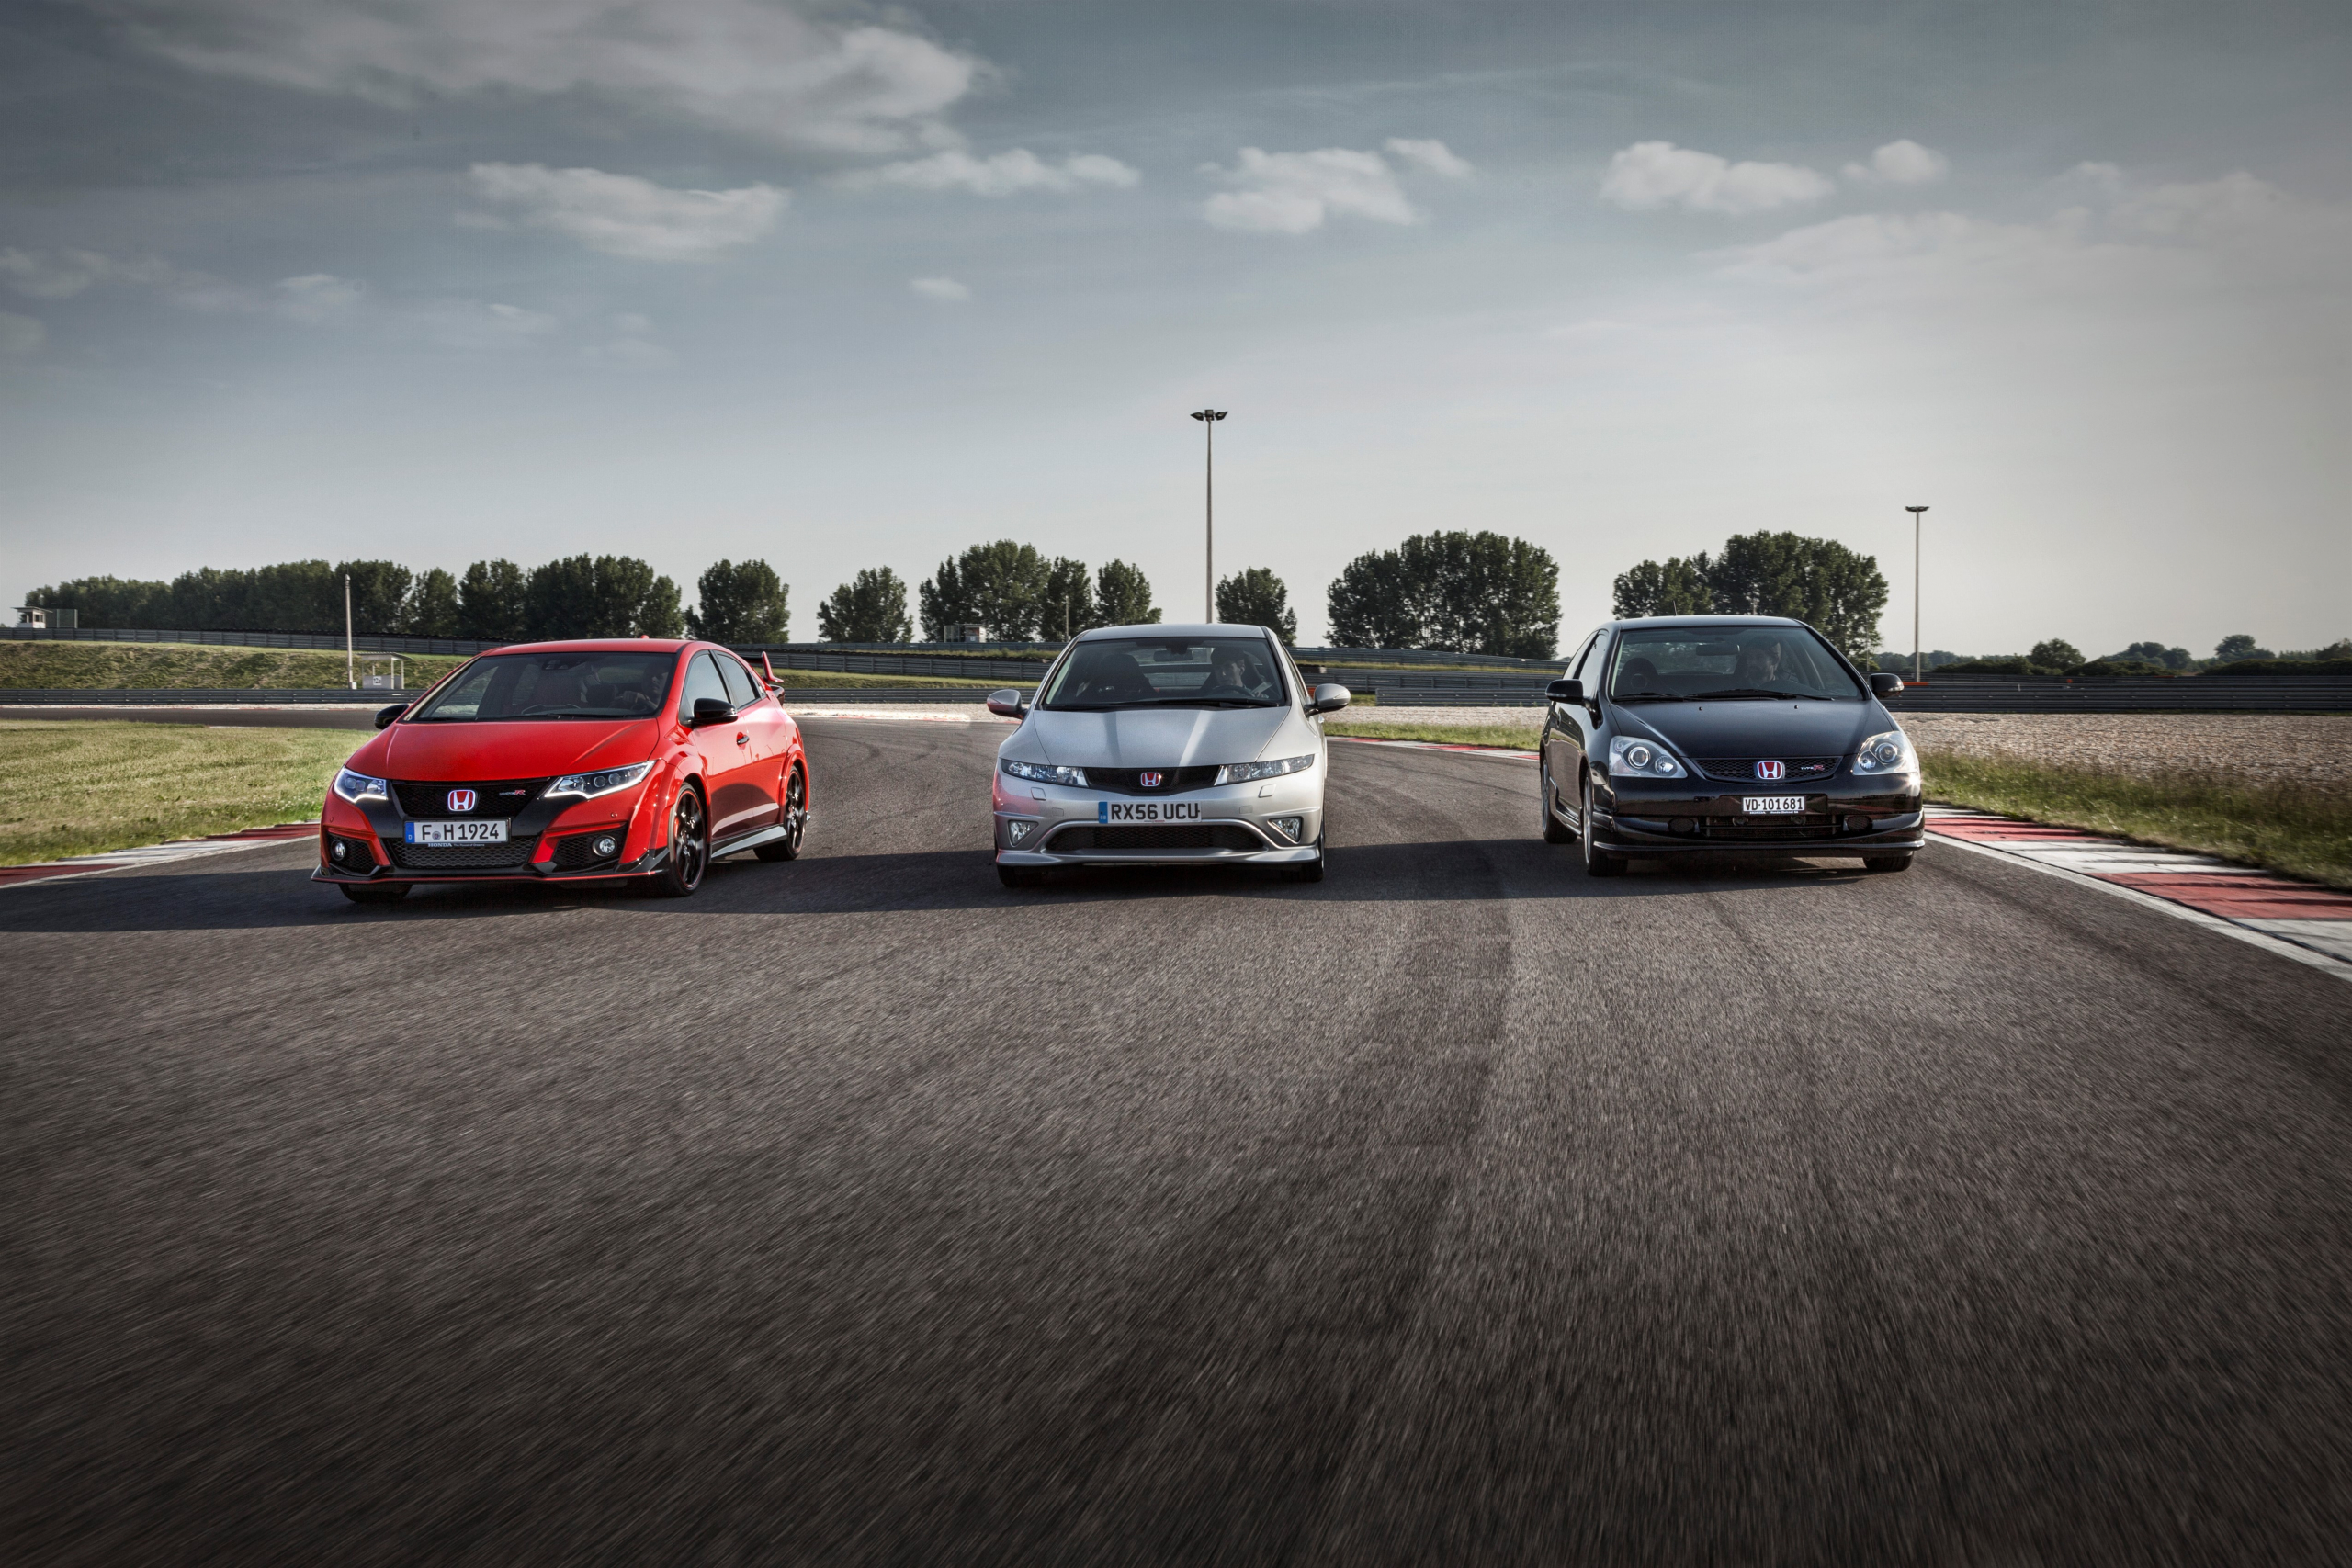 Honda Civic Type R 20th anniversary